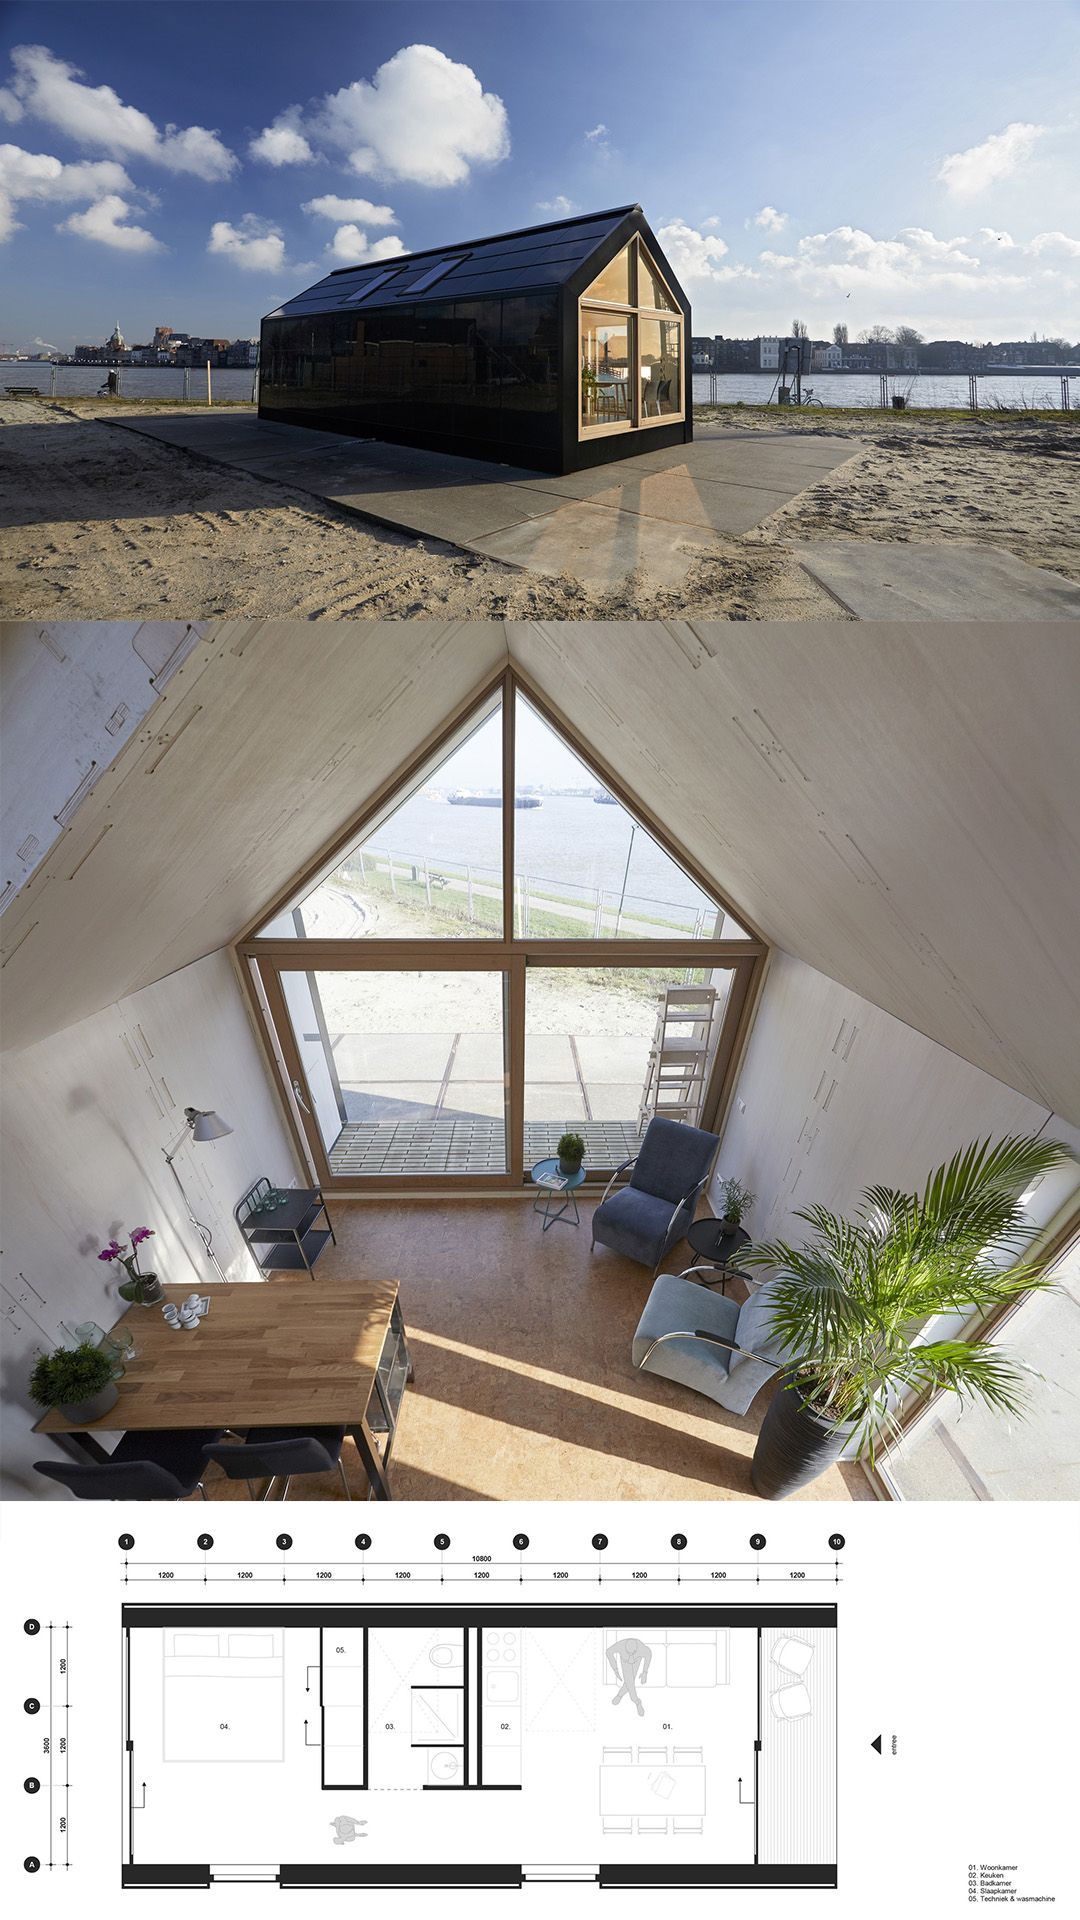 Petit place arch  architecture design house home small interior plan floorplan also homes pinterest architects and tiny rh